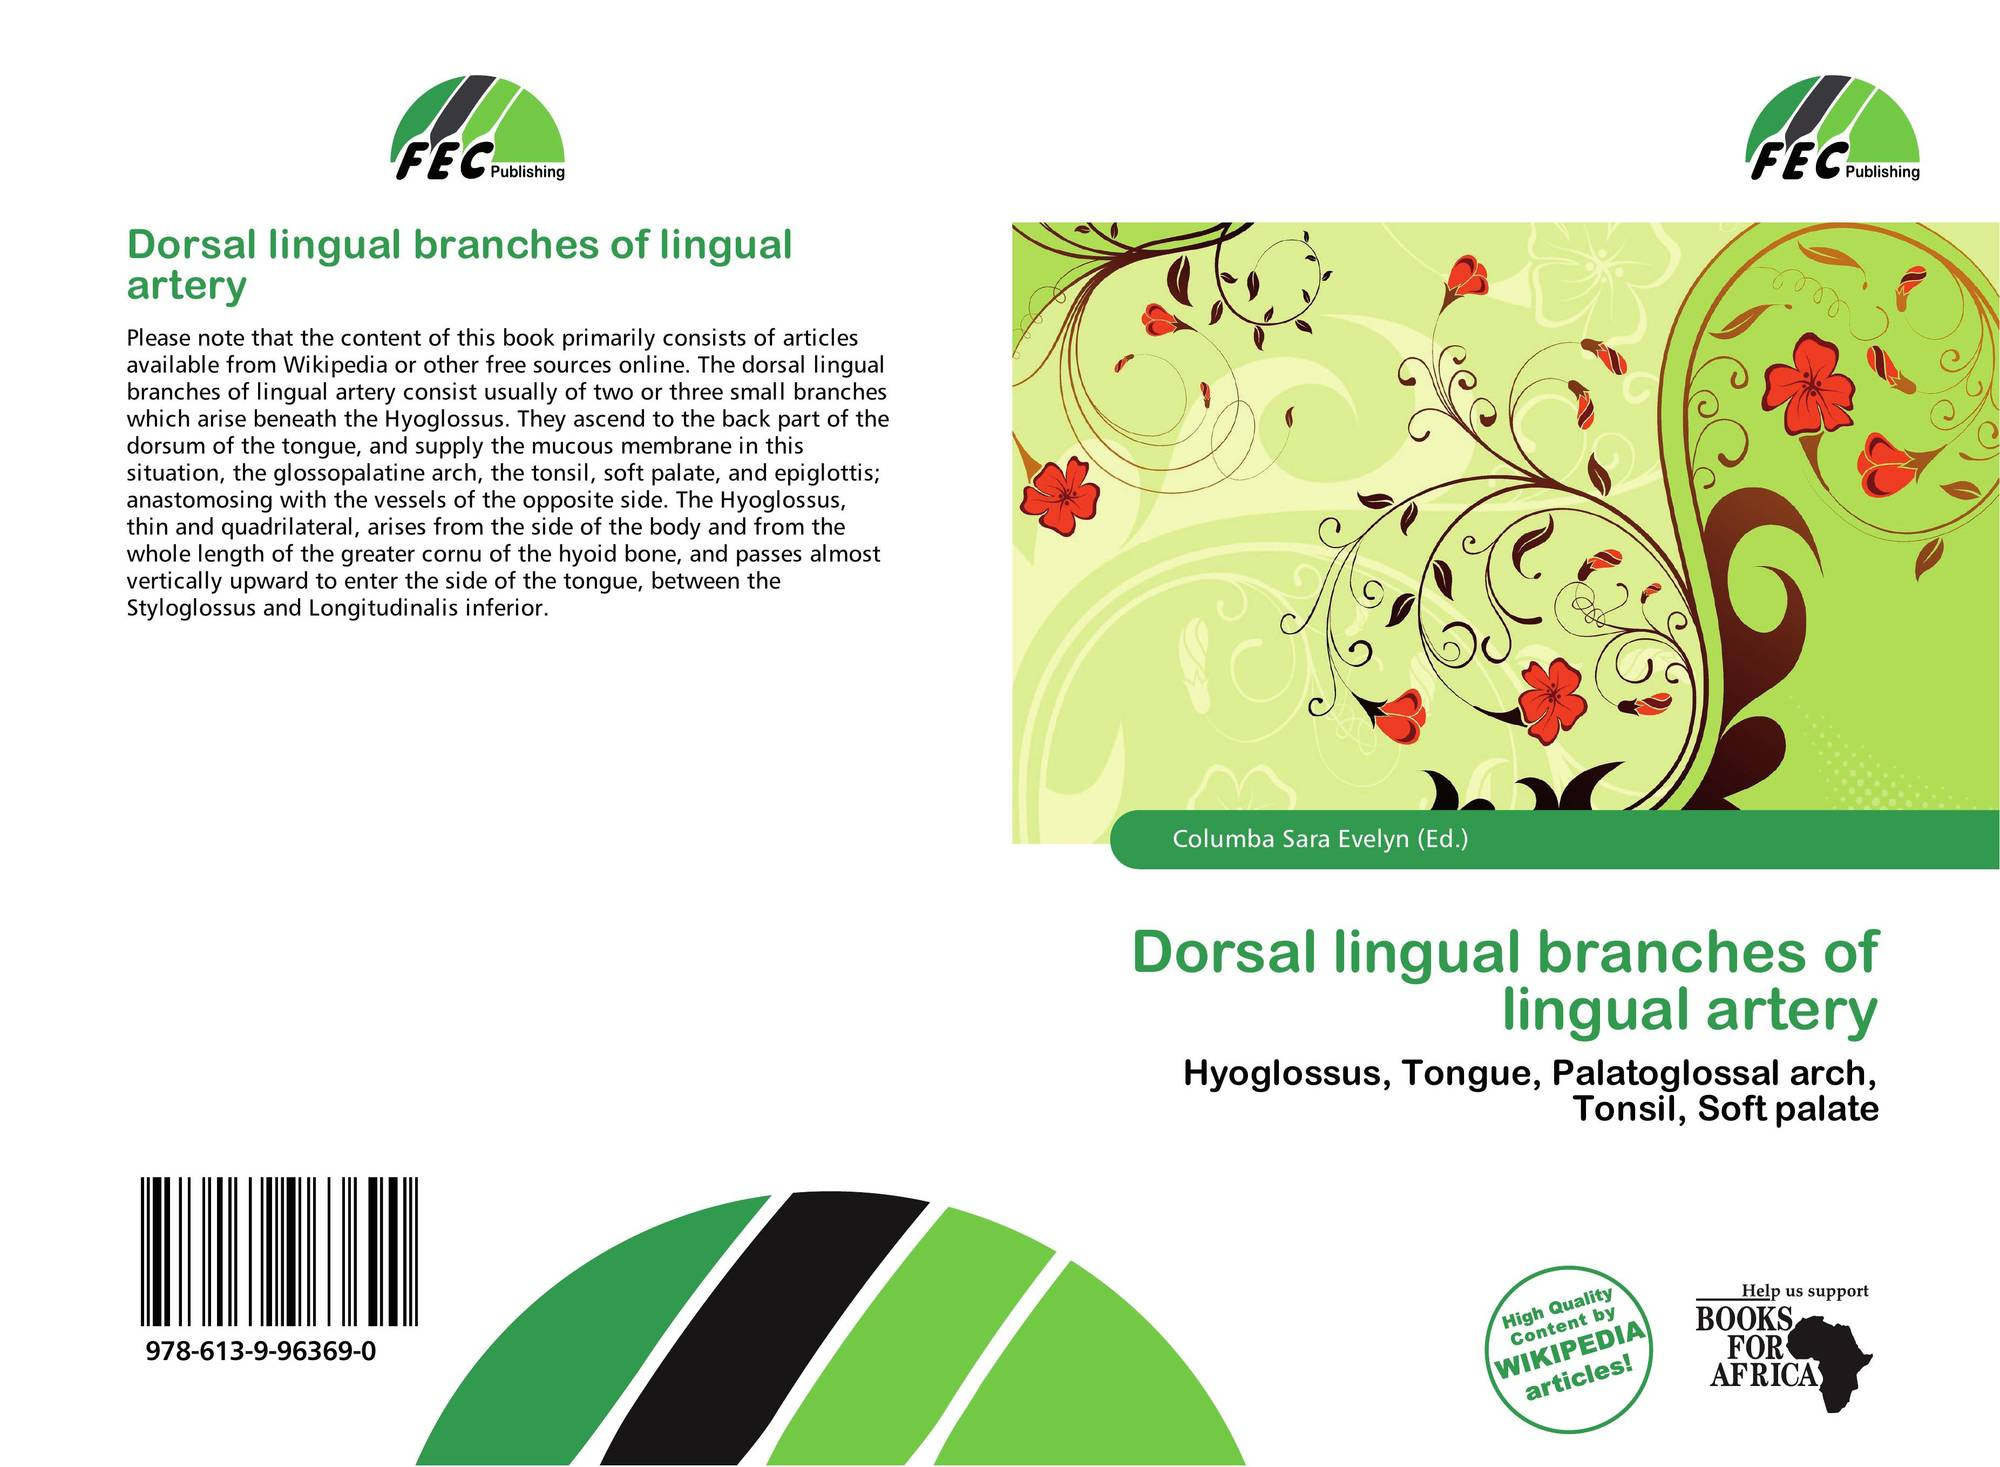 Dorsal lingual branches of lingual artery, 978-613-9-96369-0